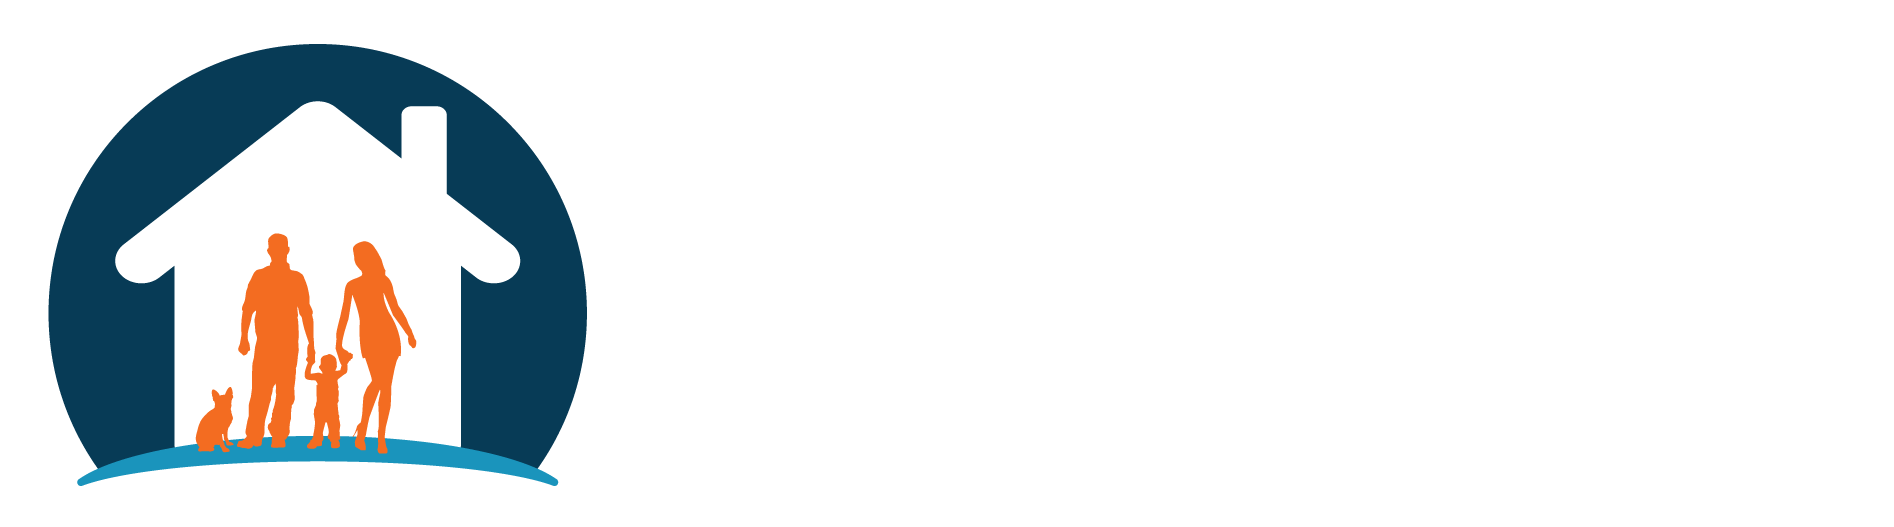 Safe Beginnings Childproofing